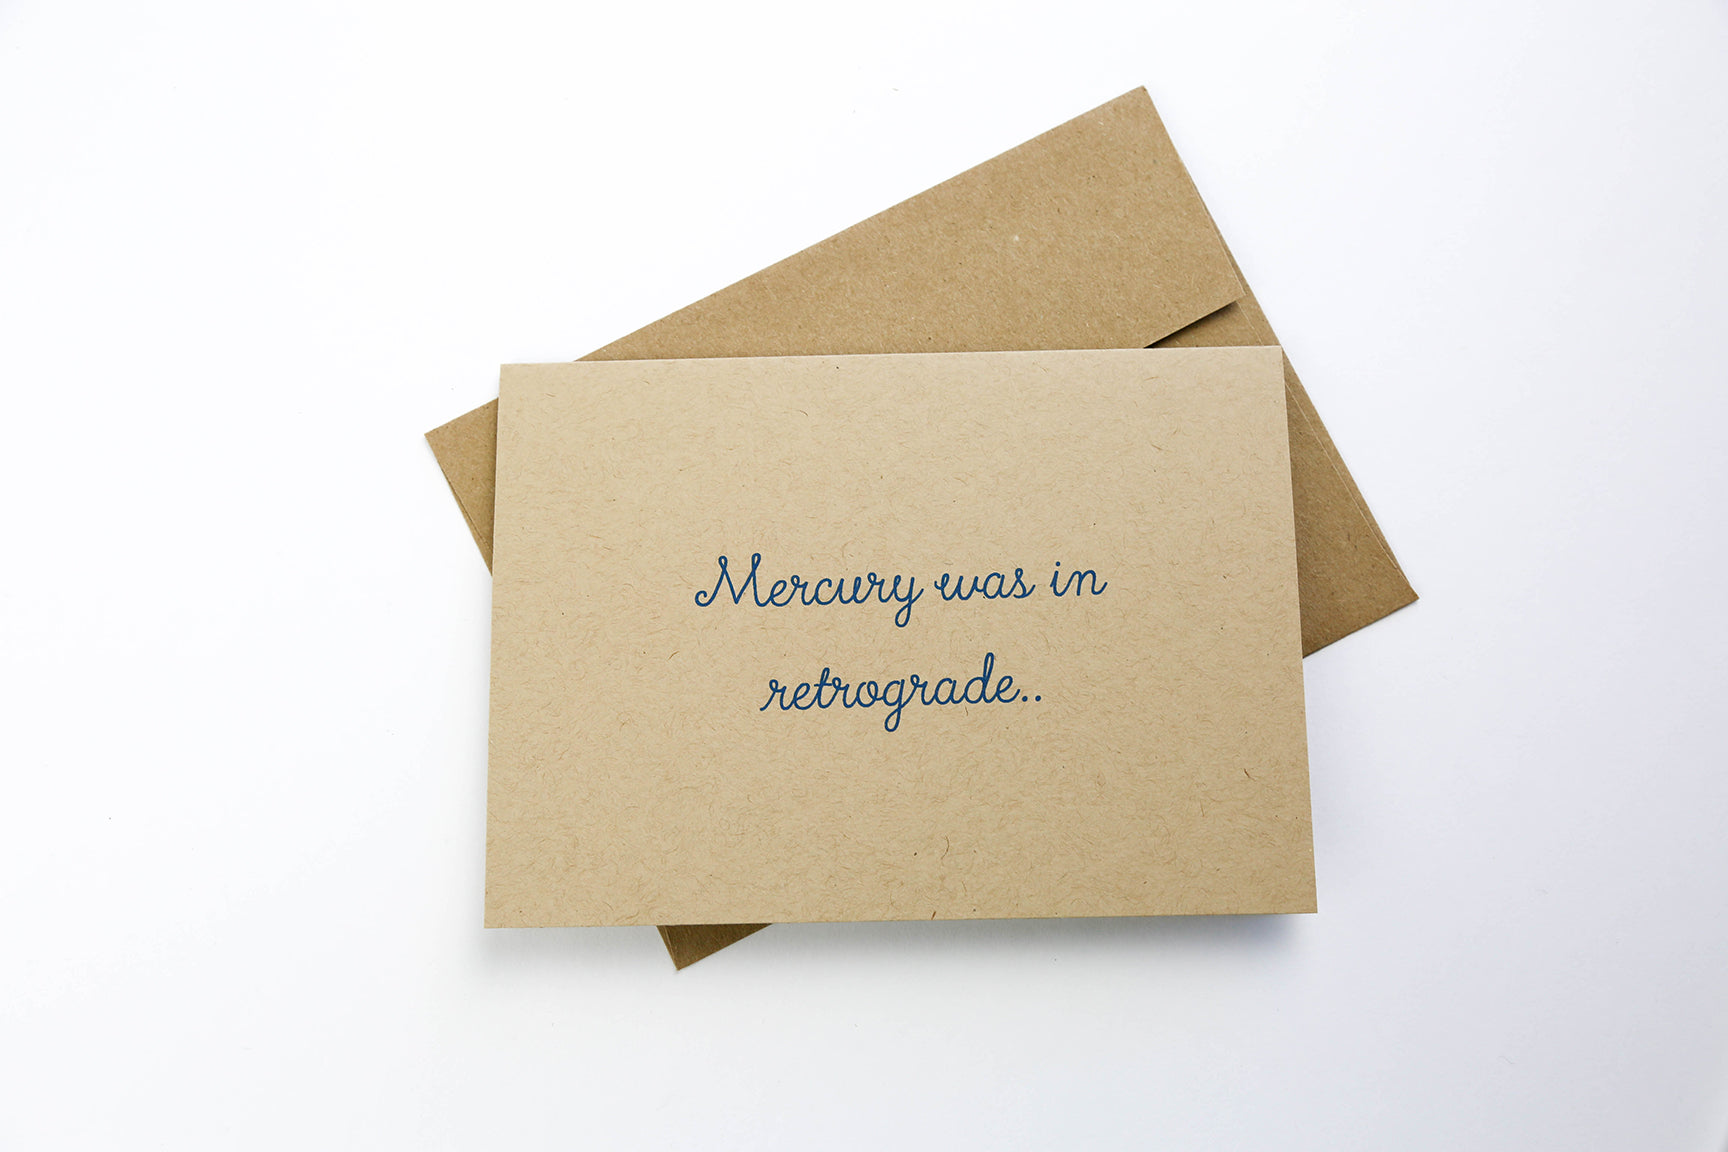 Mercury was in retrograde - Greeting Card